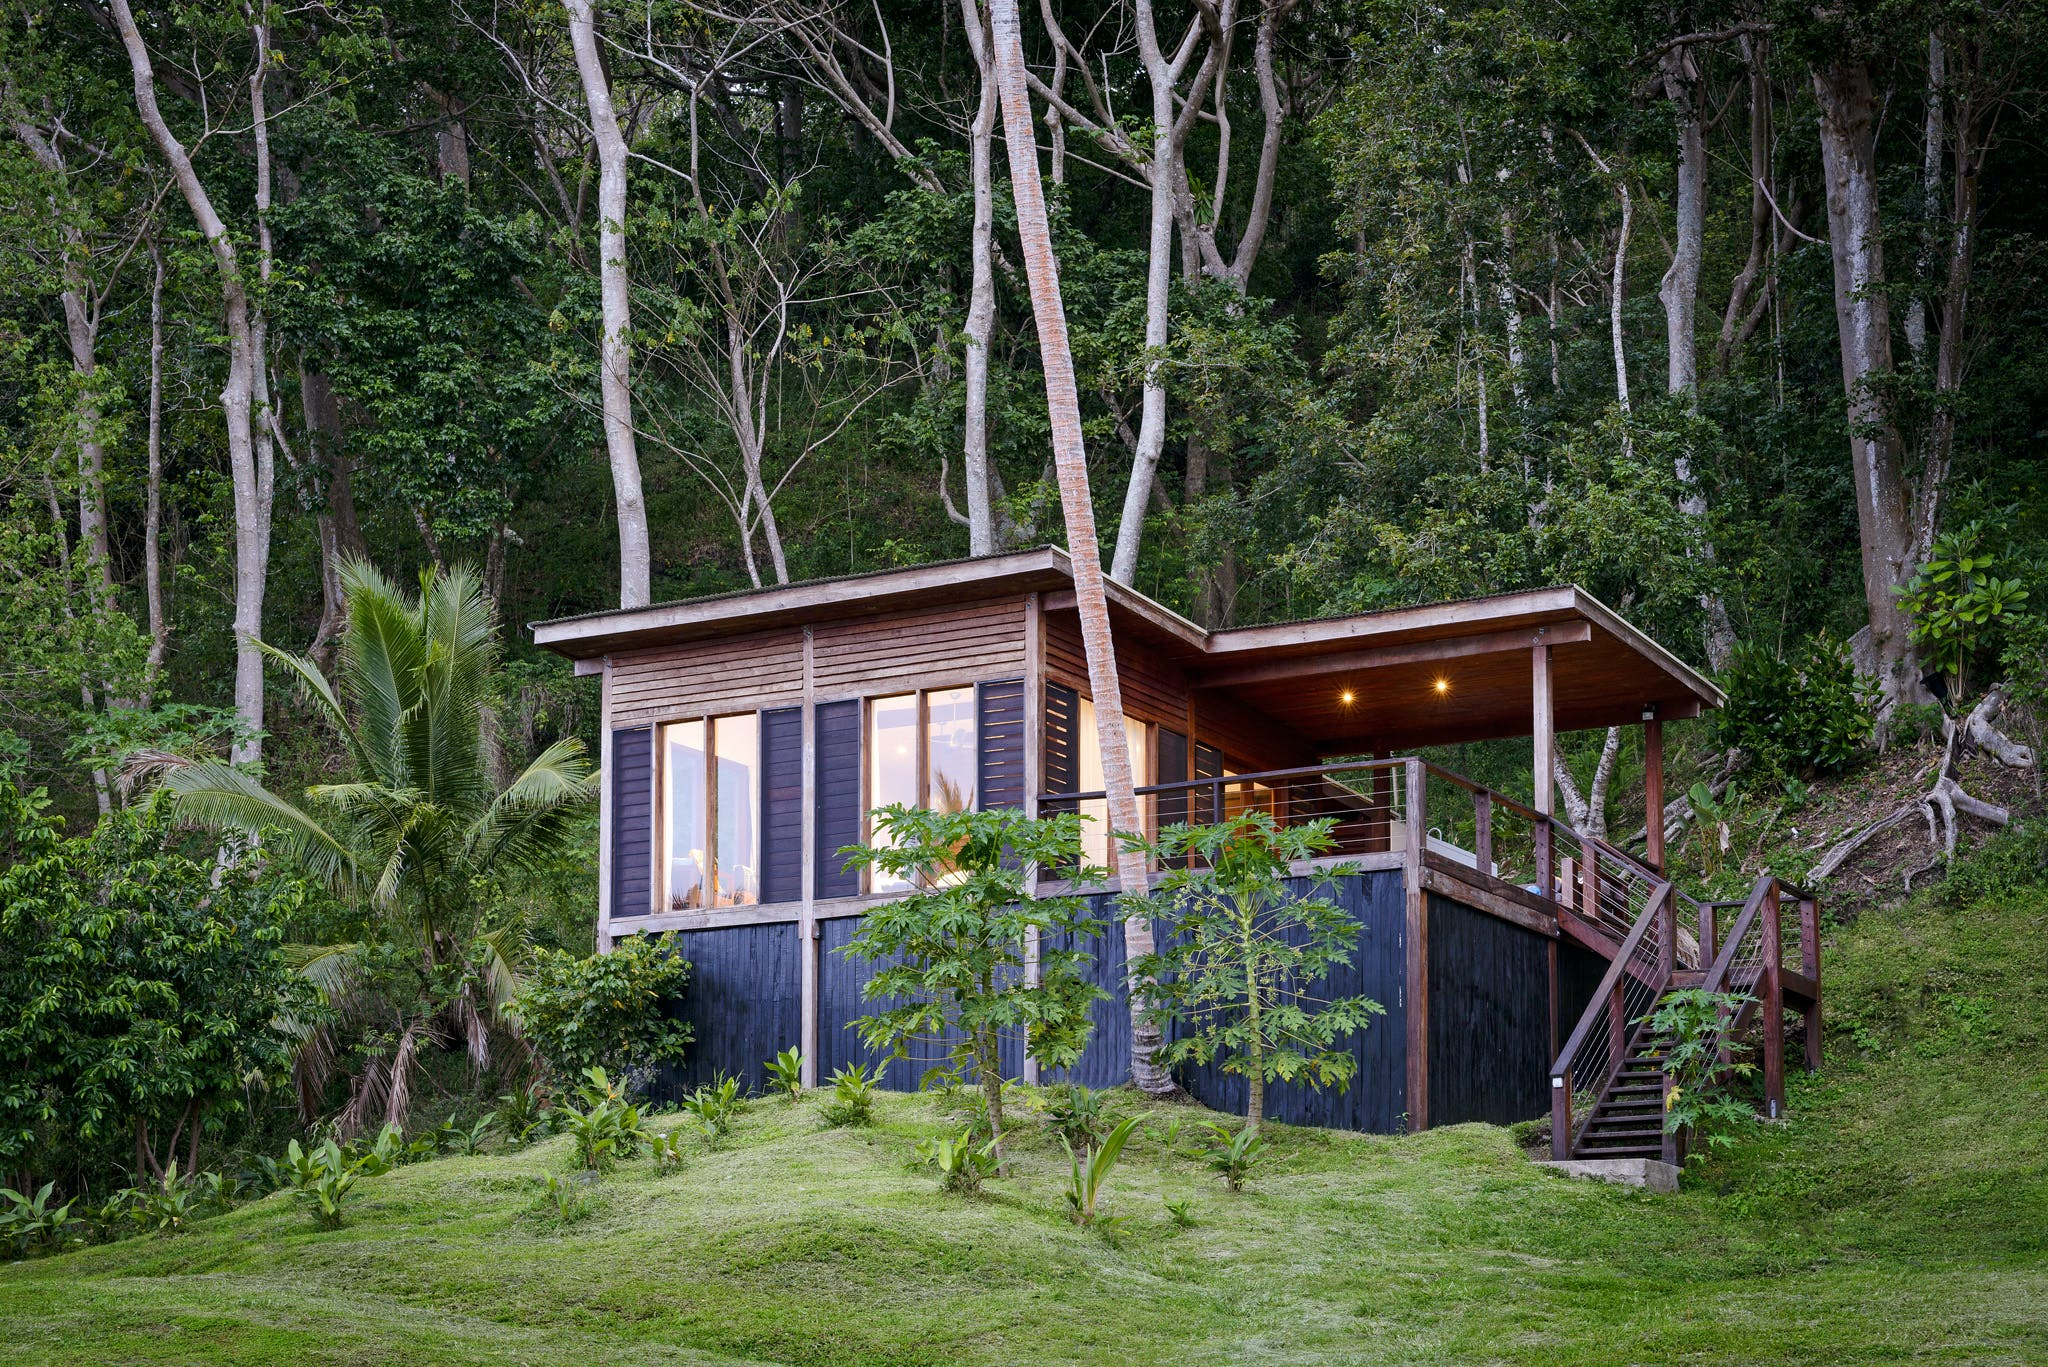 Exterior of an Oceanfront Villa at The Remote Resort Fiji Islands.  Built from Vesi timber felled and milled on-site